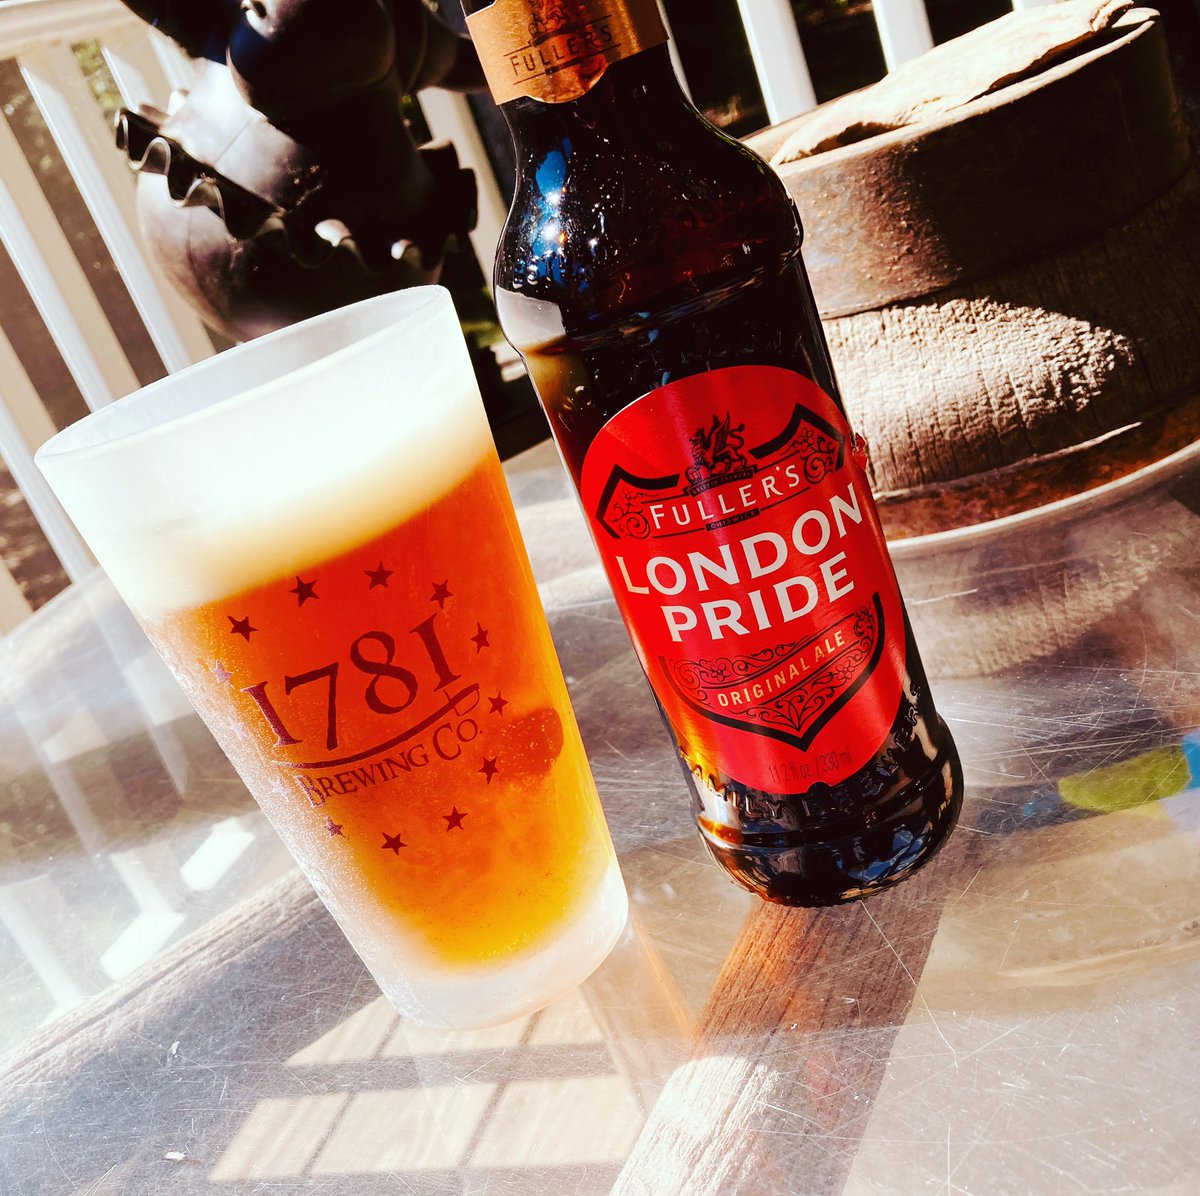 Since I can't visit the UK anytime soon, I'll have to pretend from my porch #missingtravel #londonpride #london @Fullers https://t.co/zsKAO36euC